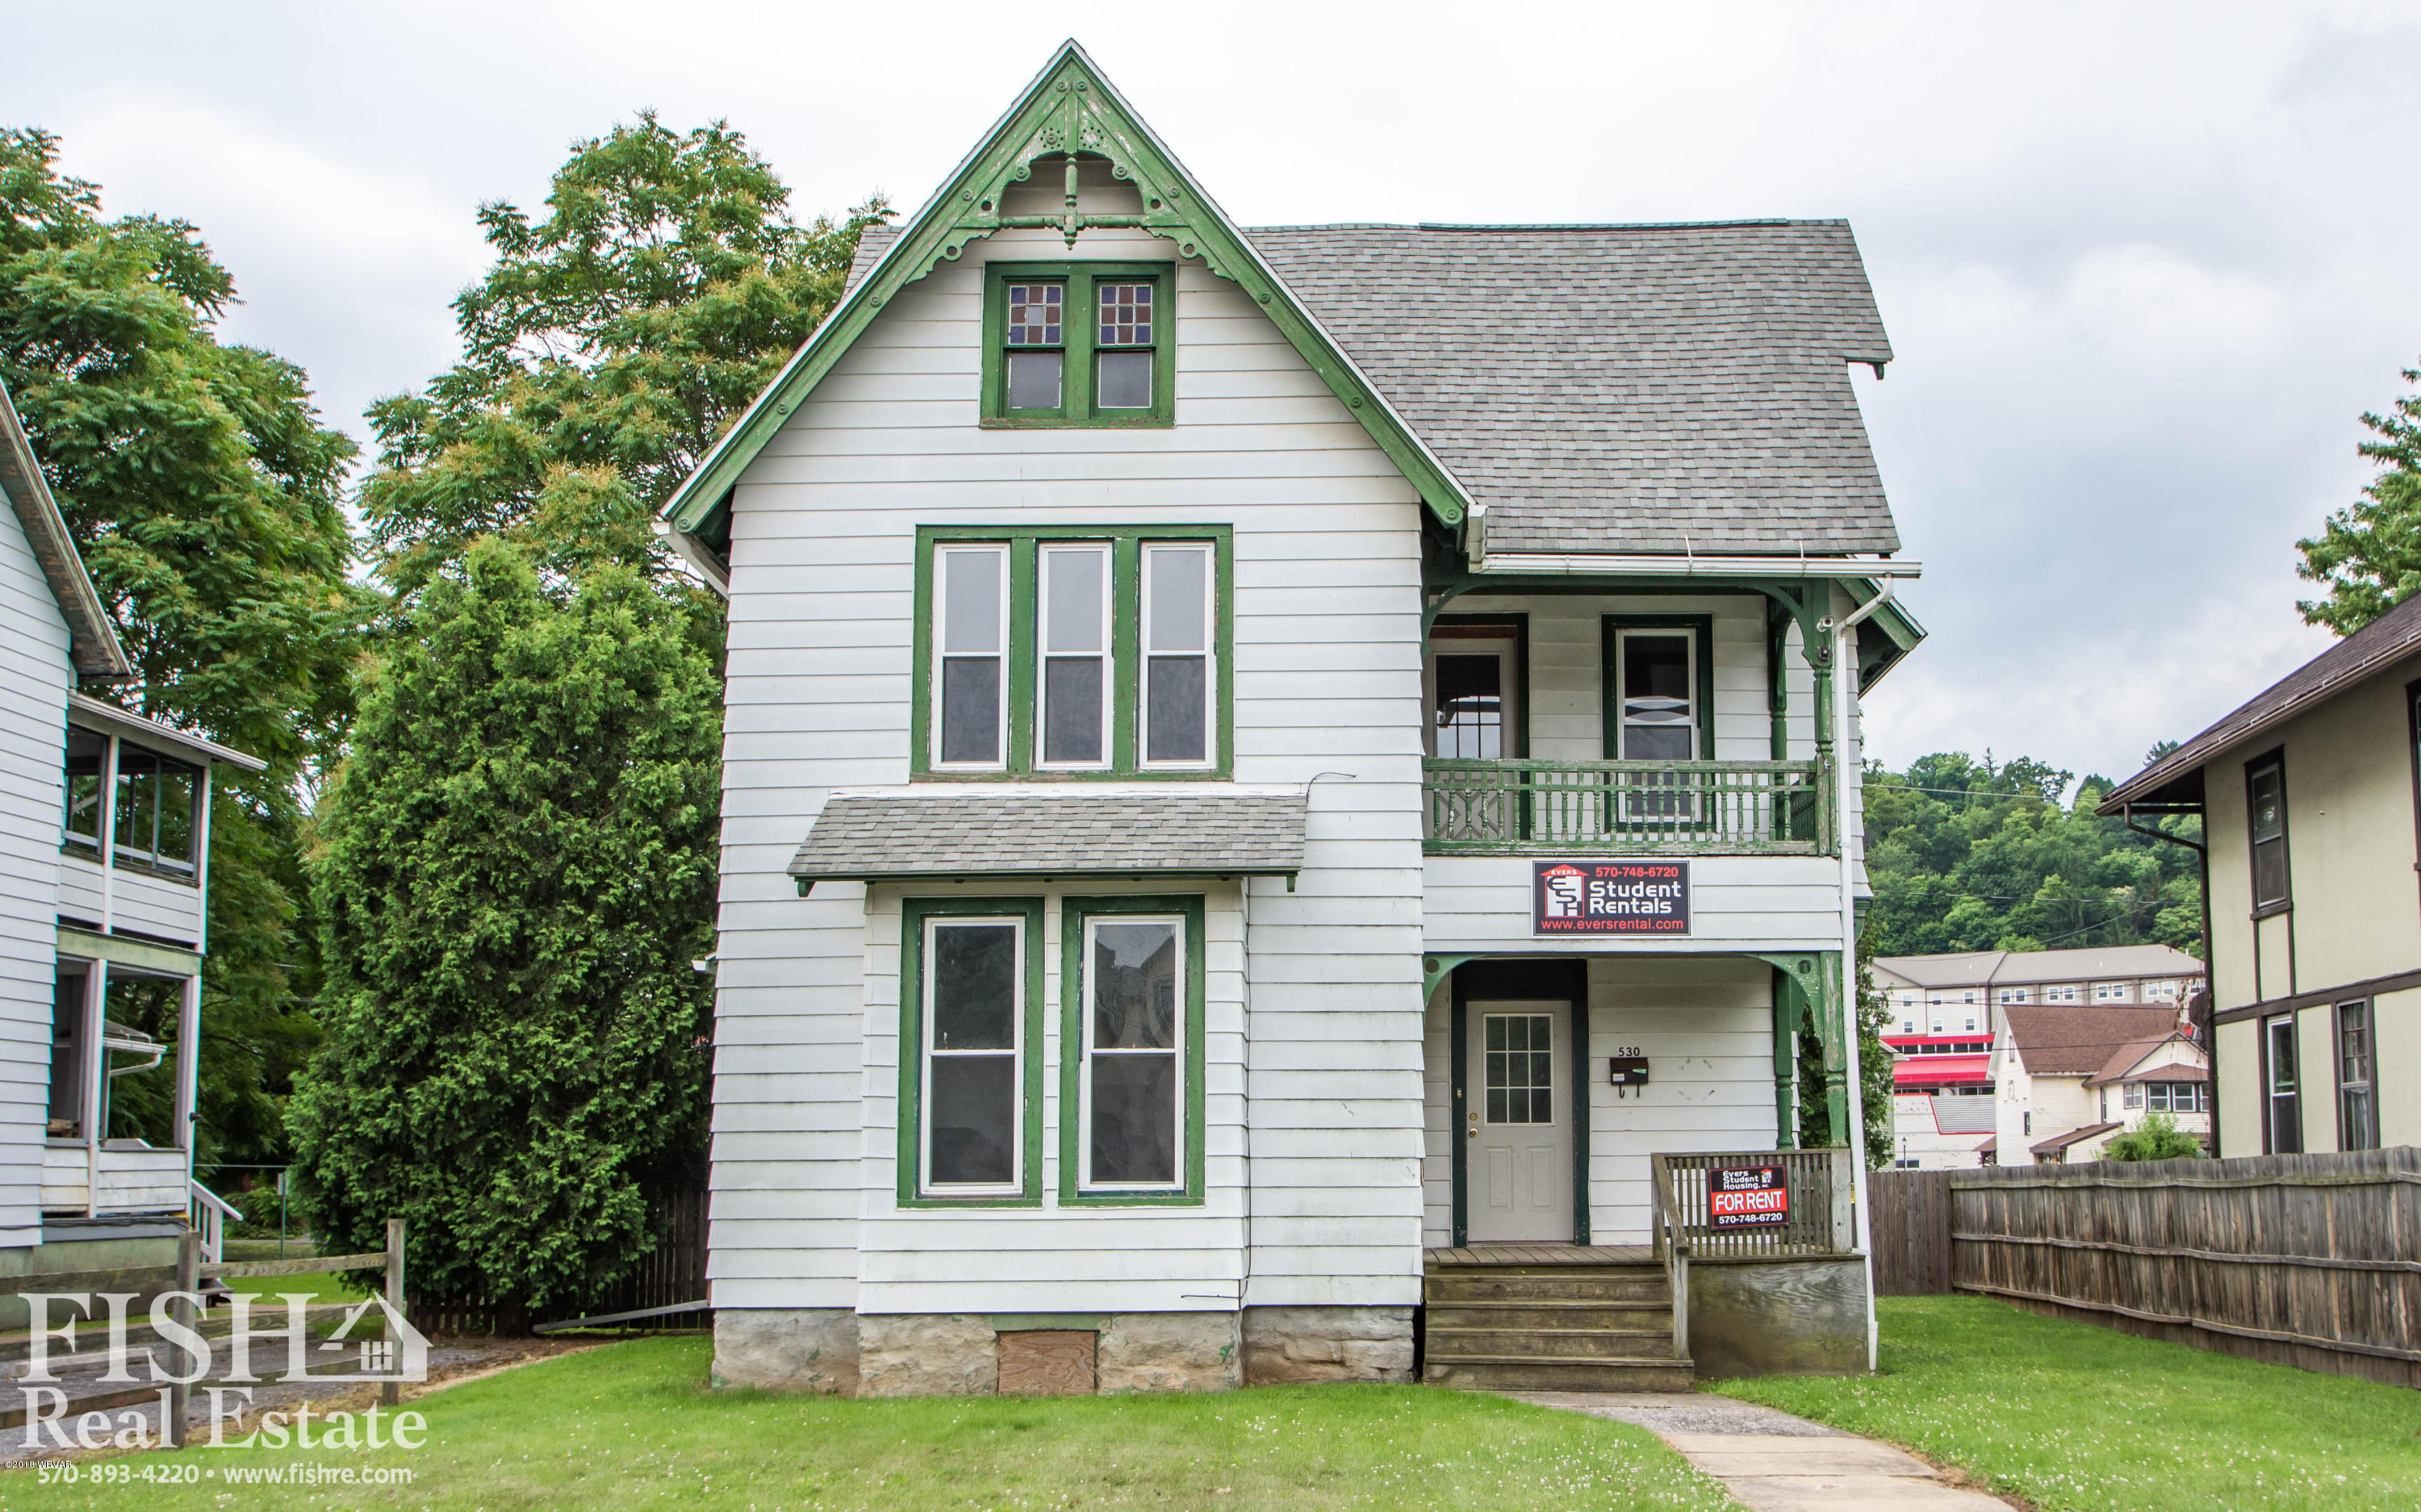 530 MAIN STREET,Lock Haven,PA 17745,6 Bedrooms Bedrooms,2 BathroomsBathrooms,Residential,MAIN,WB-86158